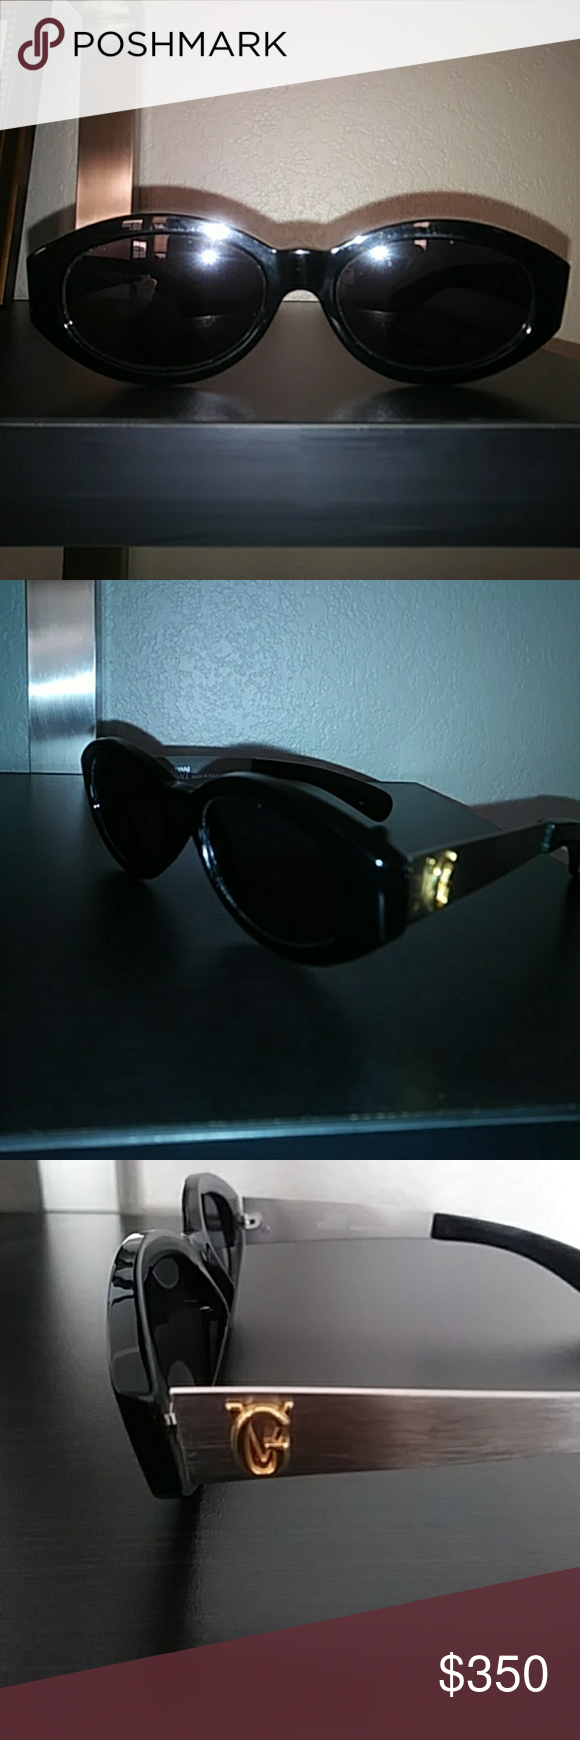 Hp Versace Sunglasses Versace Sunglasses Silver Sunglasses Glasses Accessories